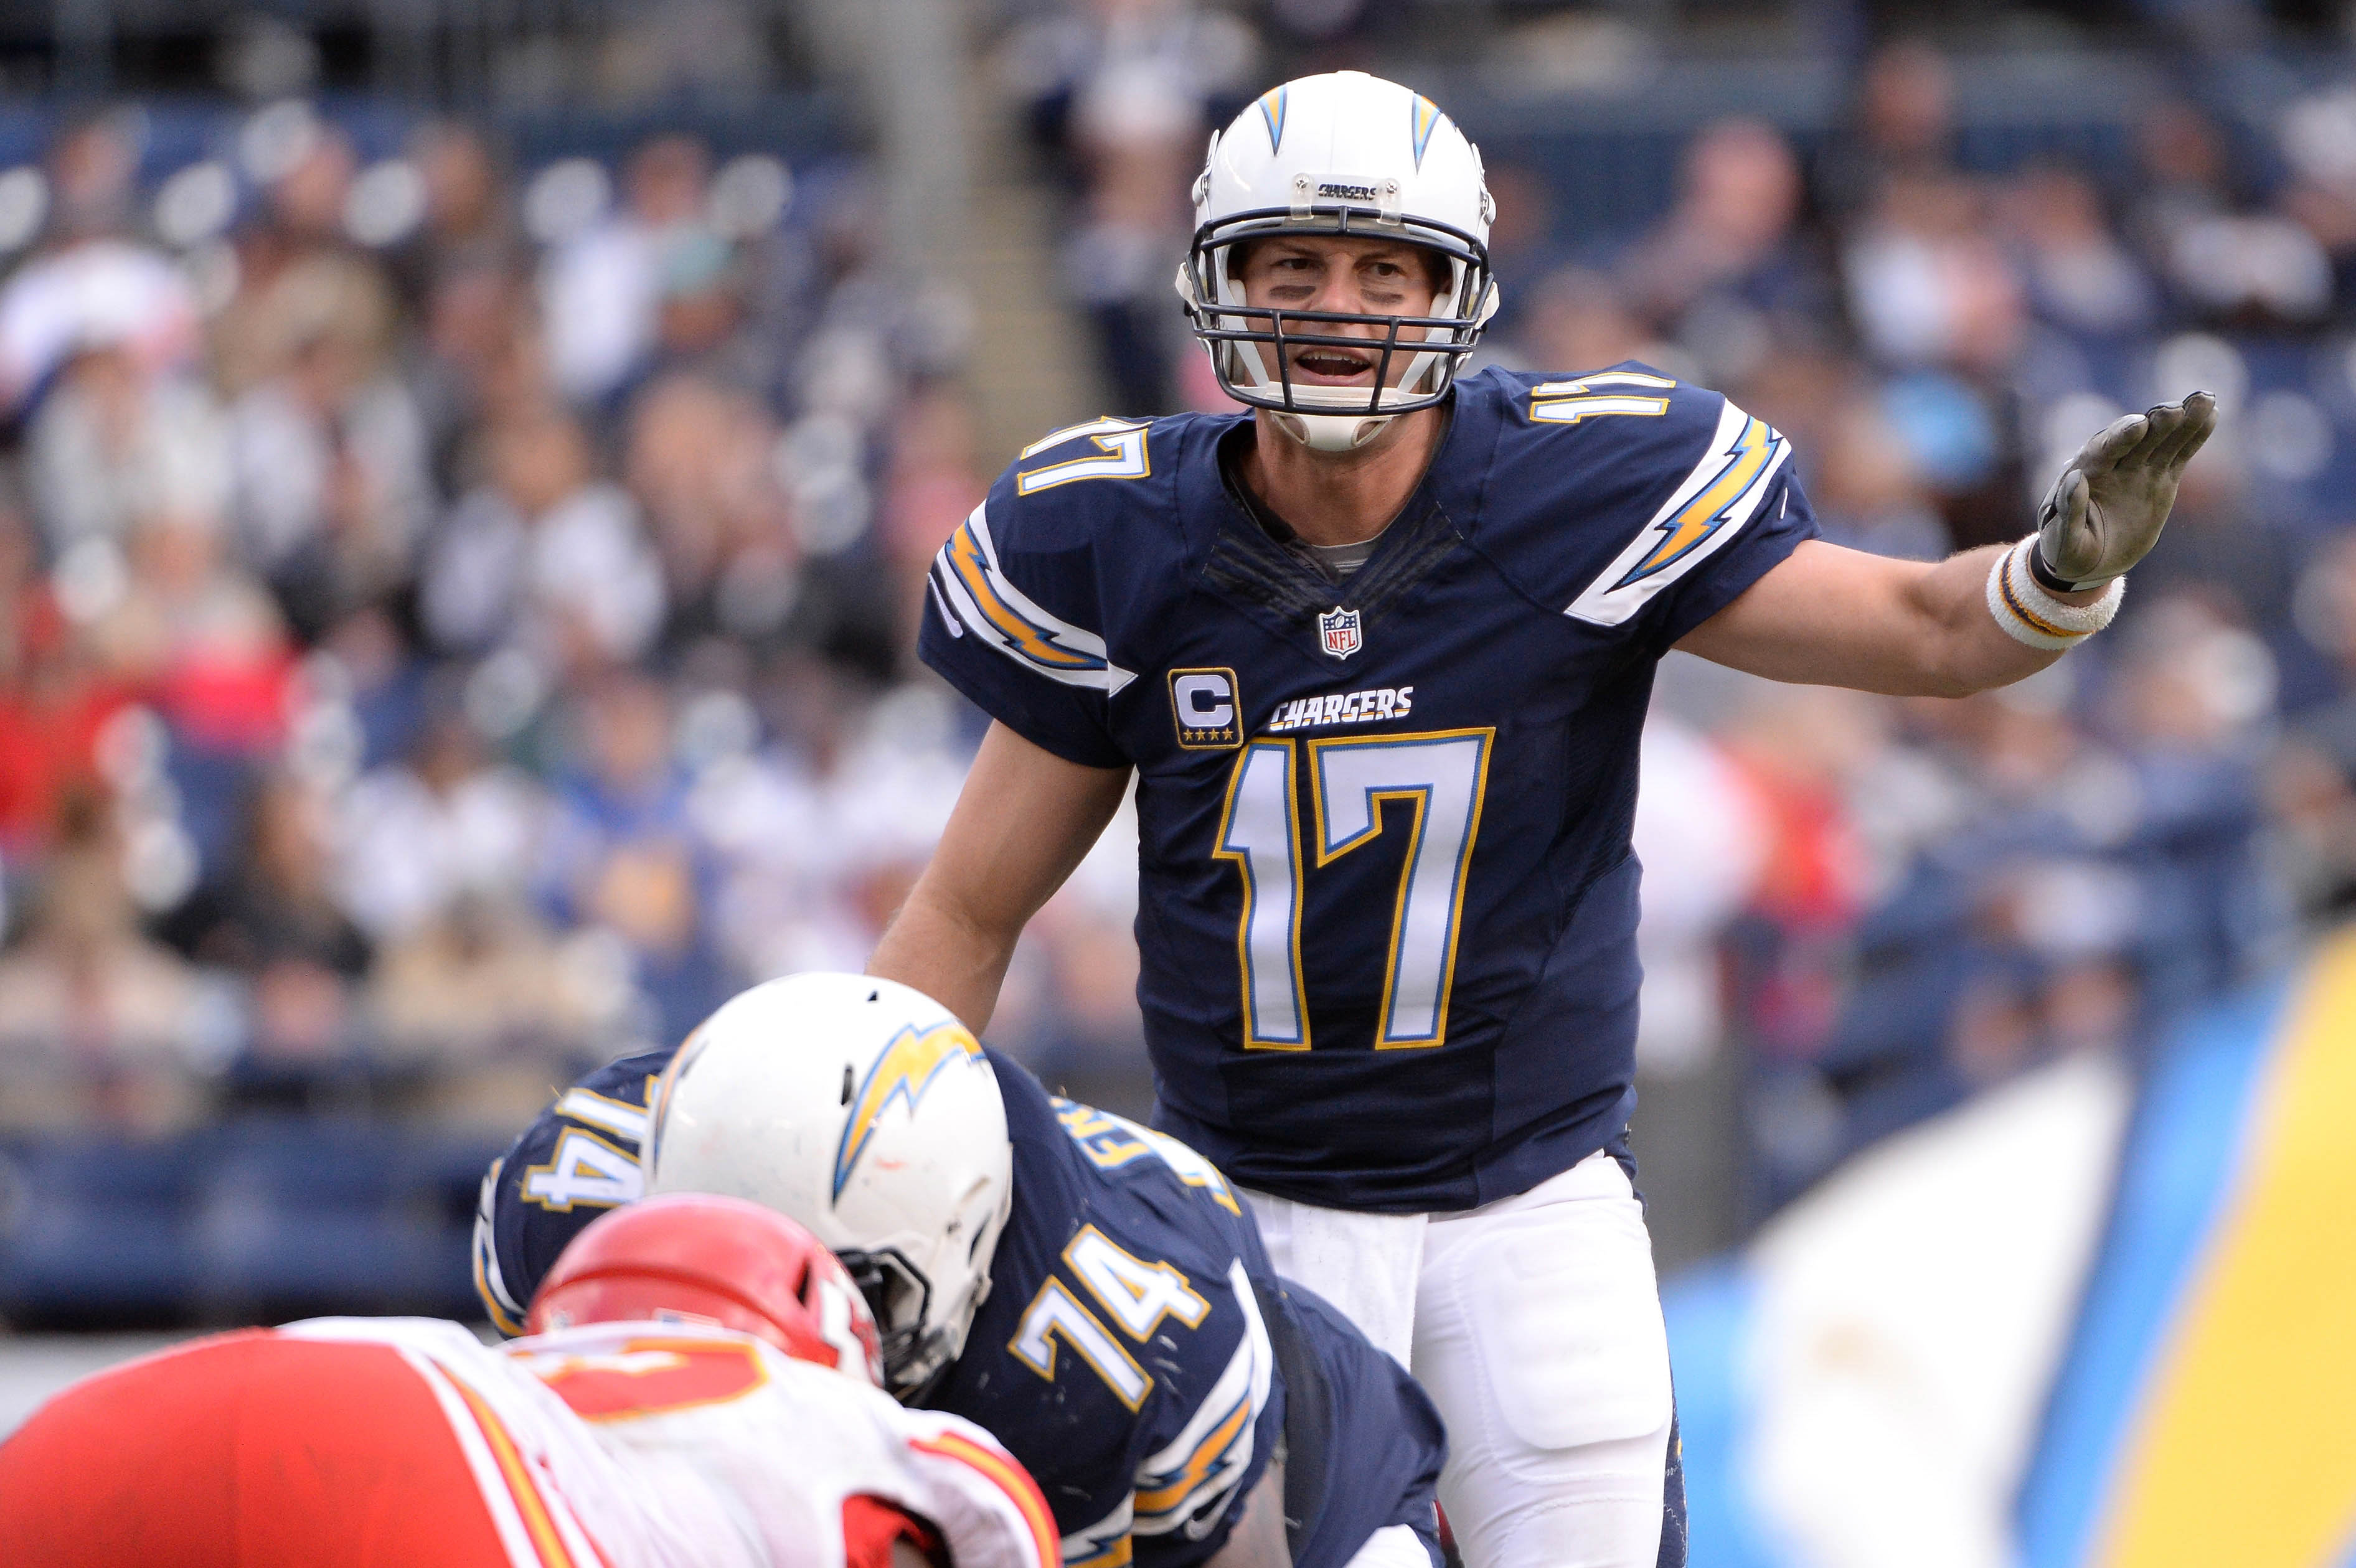 9805338-nfl-kansas-city-chiefs-at-san-diego-chargers